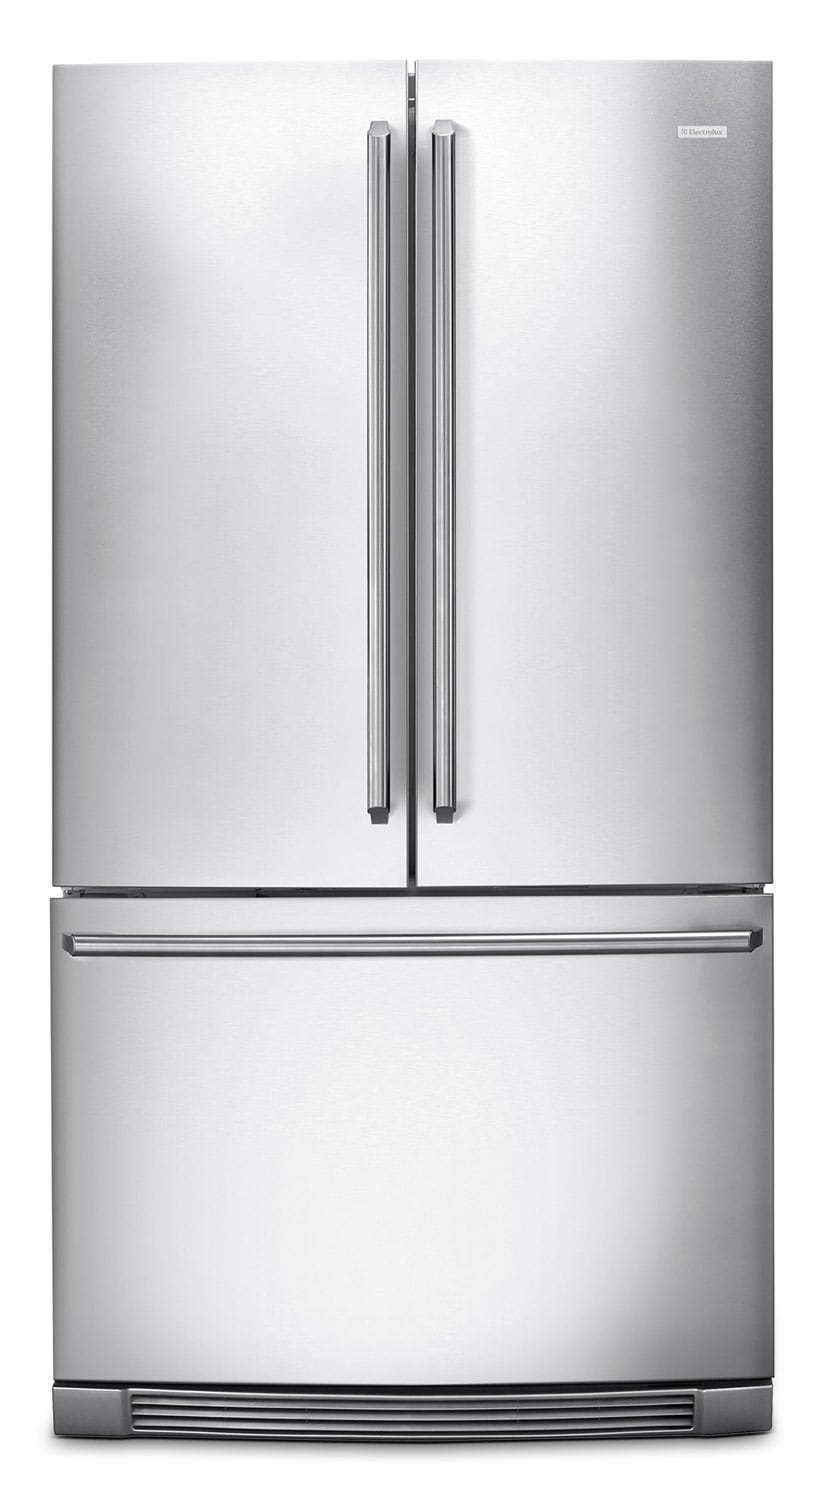 Refrigerators and Freezers - Electrolux Stainless Steel Counter-Depth French Door Refrigerator (22.55 Cu. Ft.) - EI23BC60KS